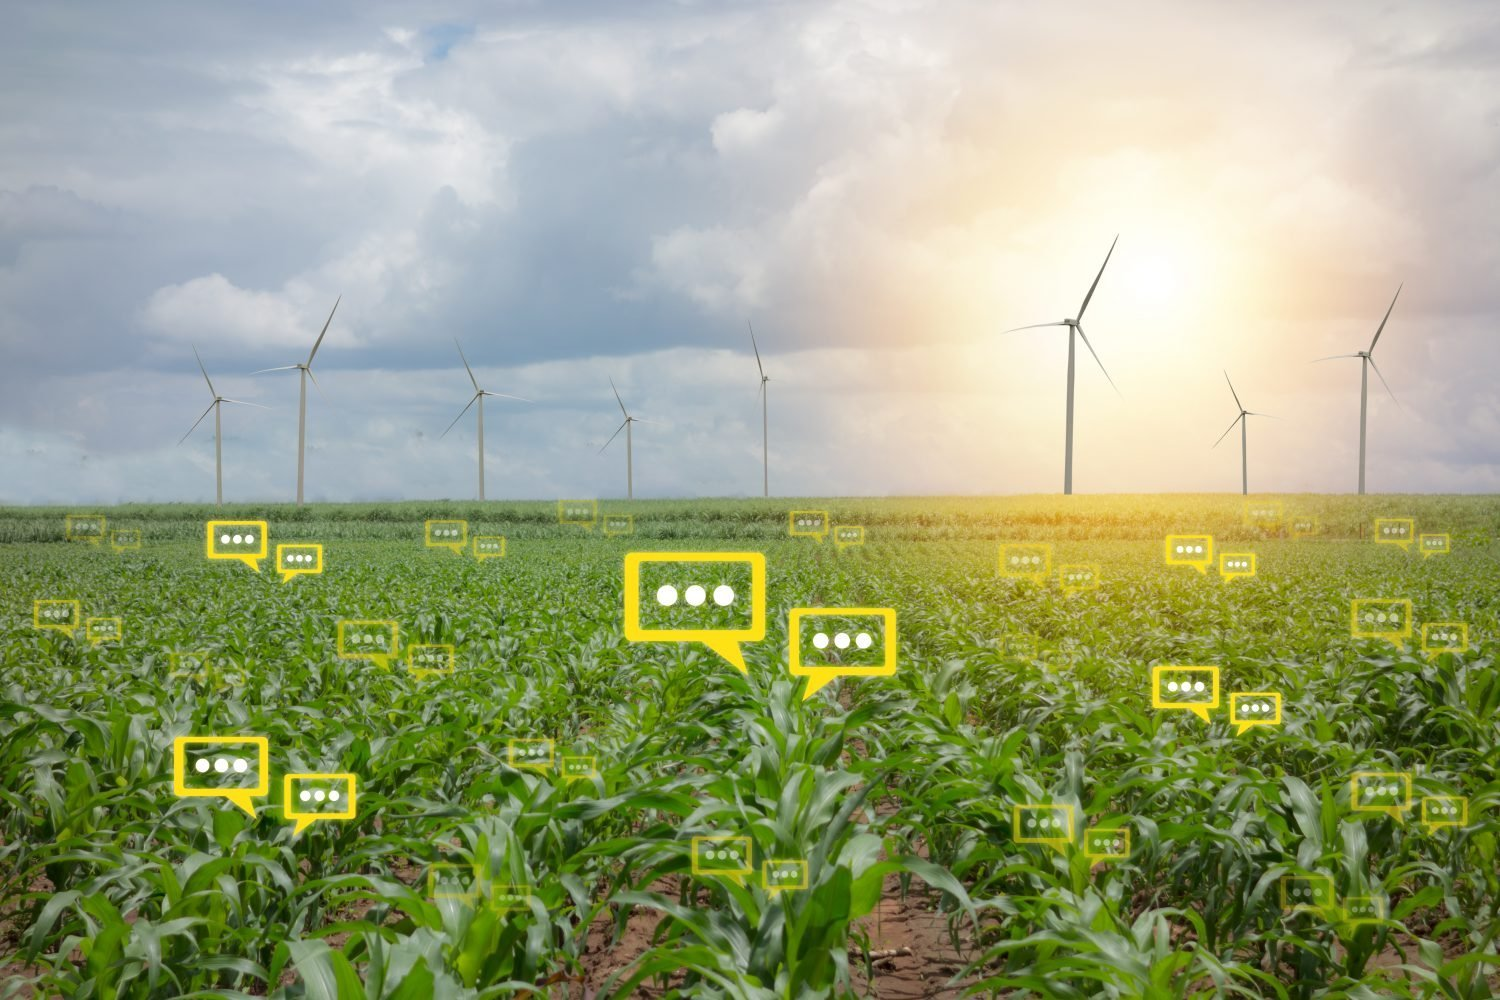 Crop farm with digital thought boxes implying big data information